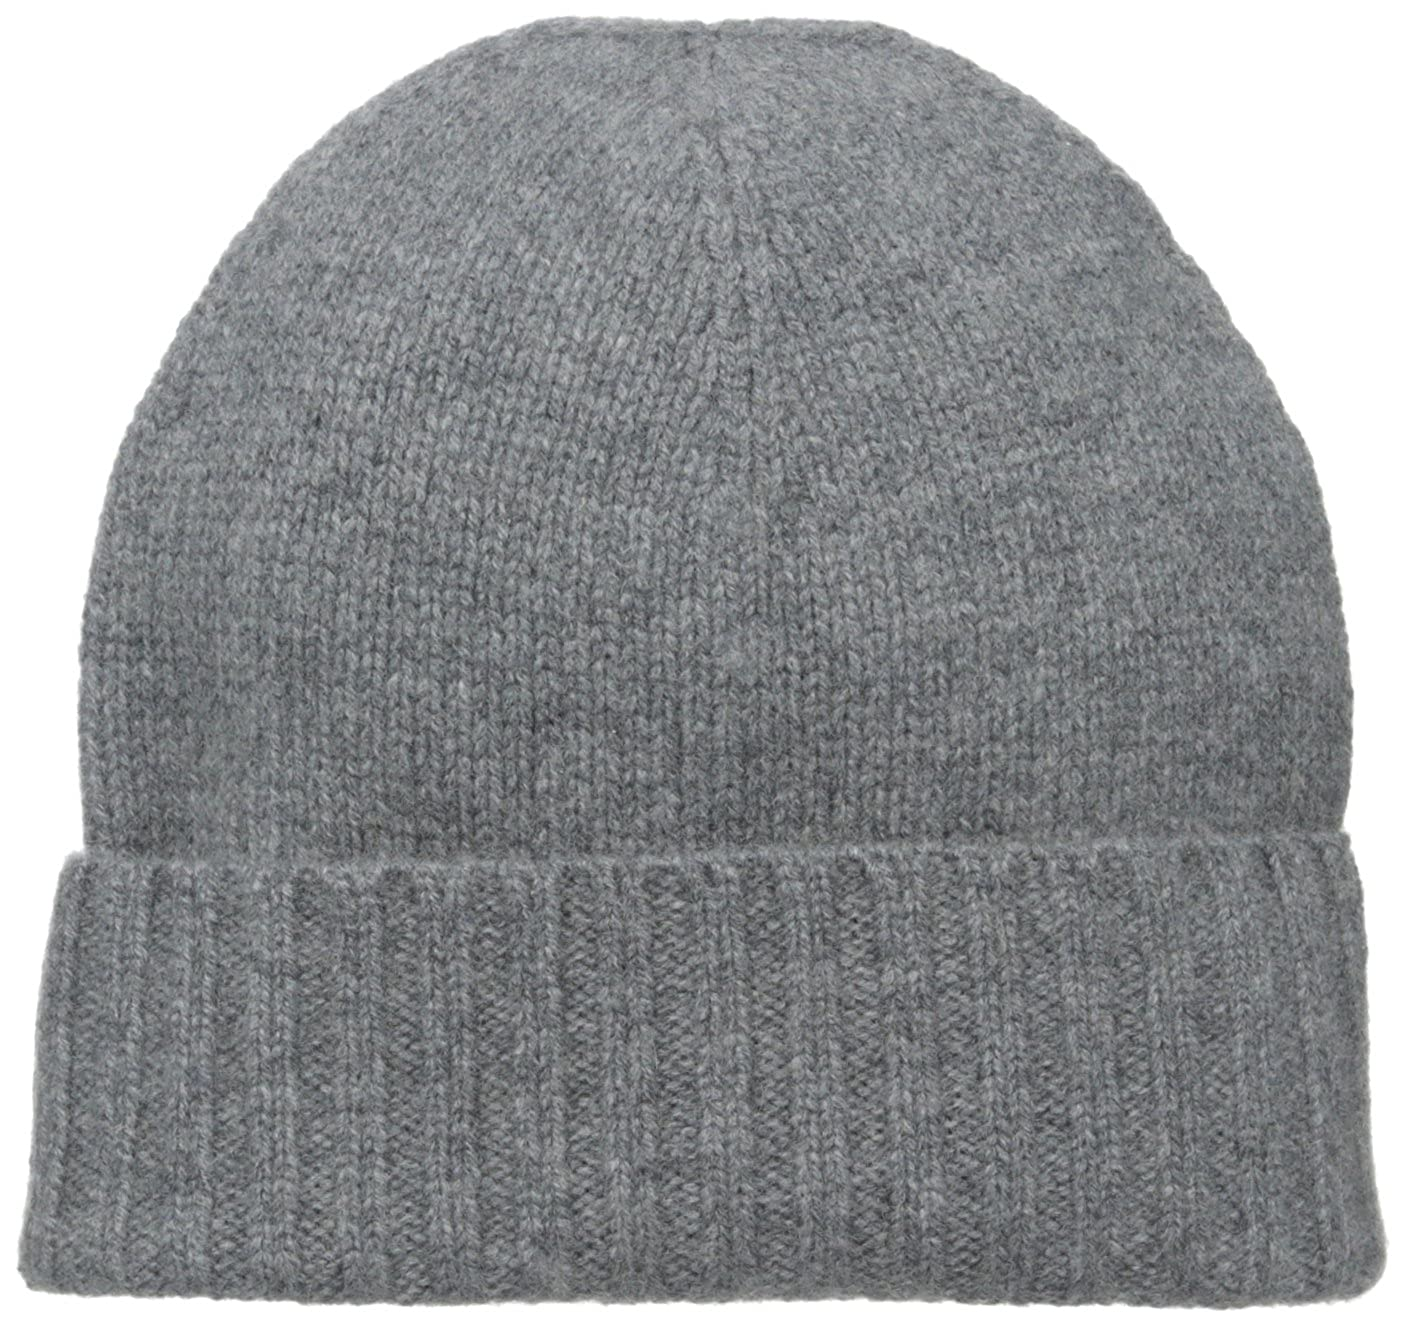 0a0f34f9d65 Amazon.com  Hat Attack Women s Cashmere Slouchy Hat